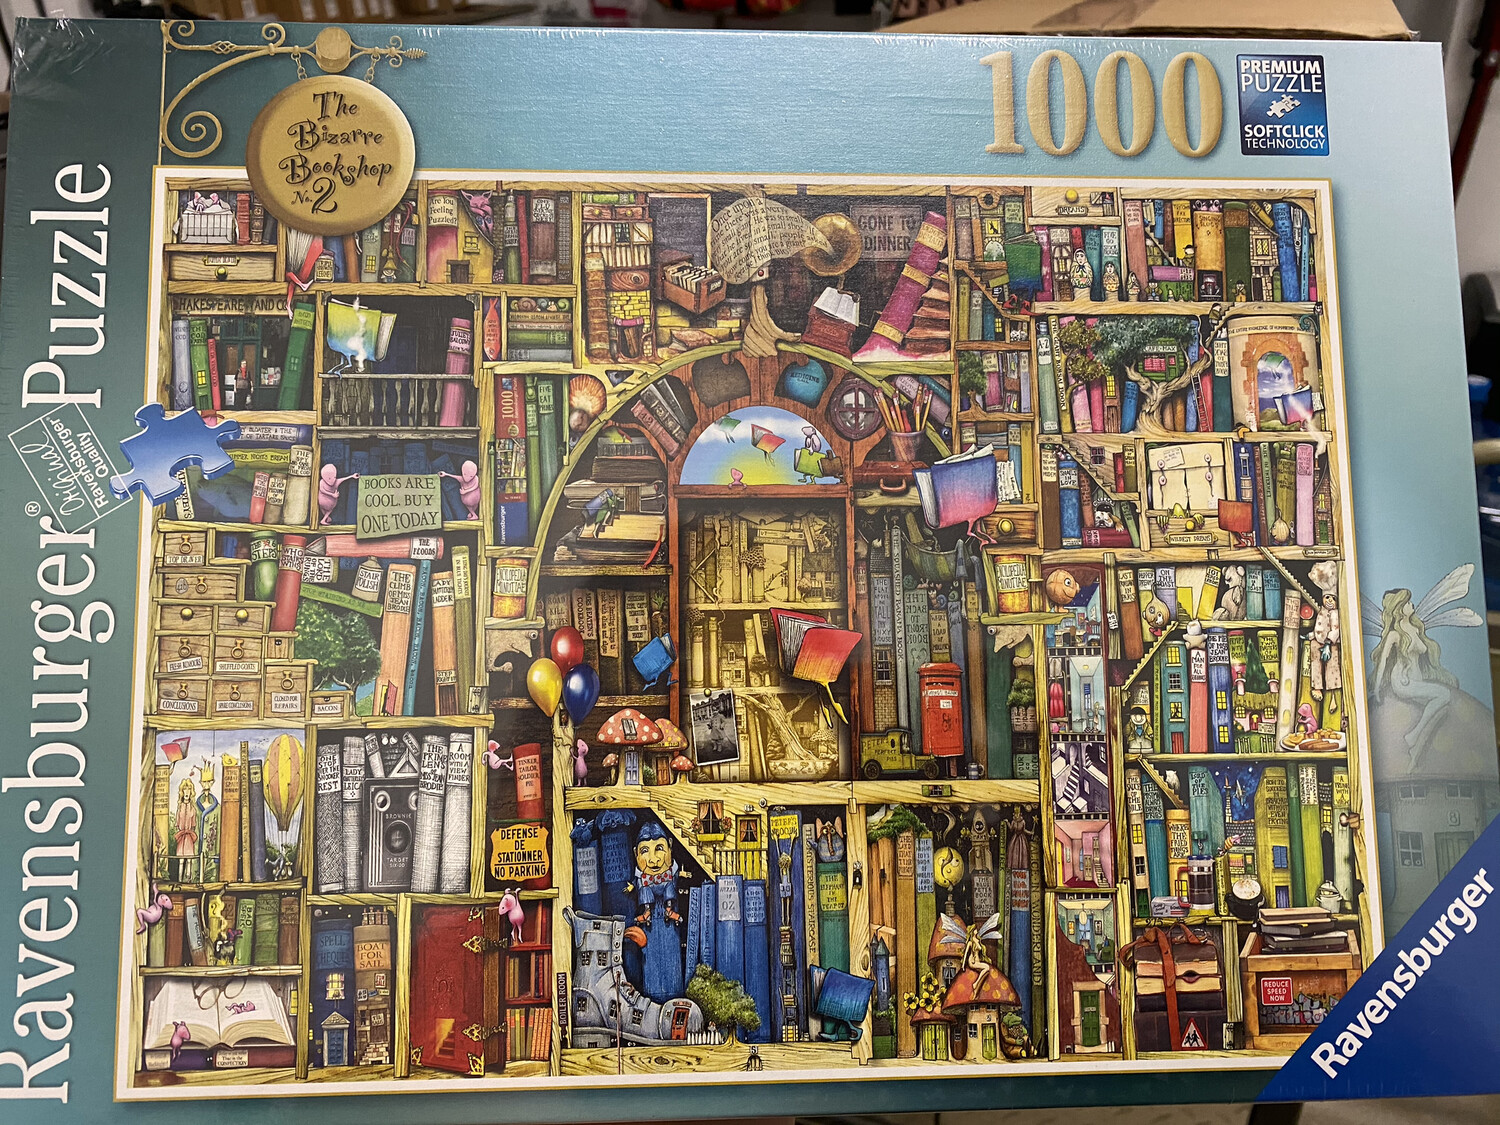 The Bizarre Bookshop No. 2, Ravensburger 1000 Piece Puzzle